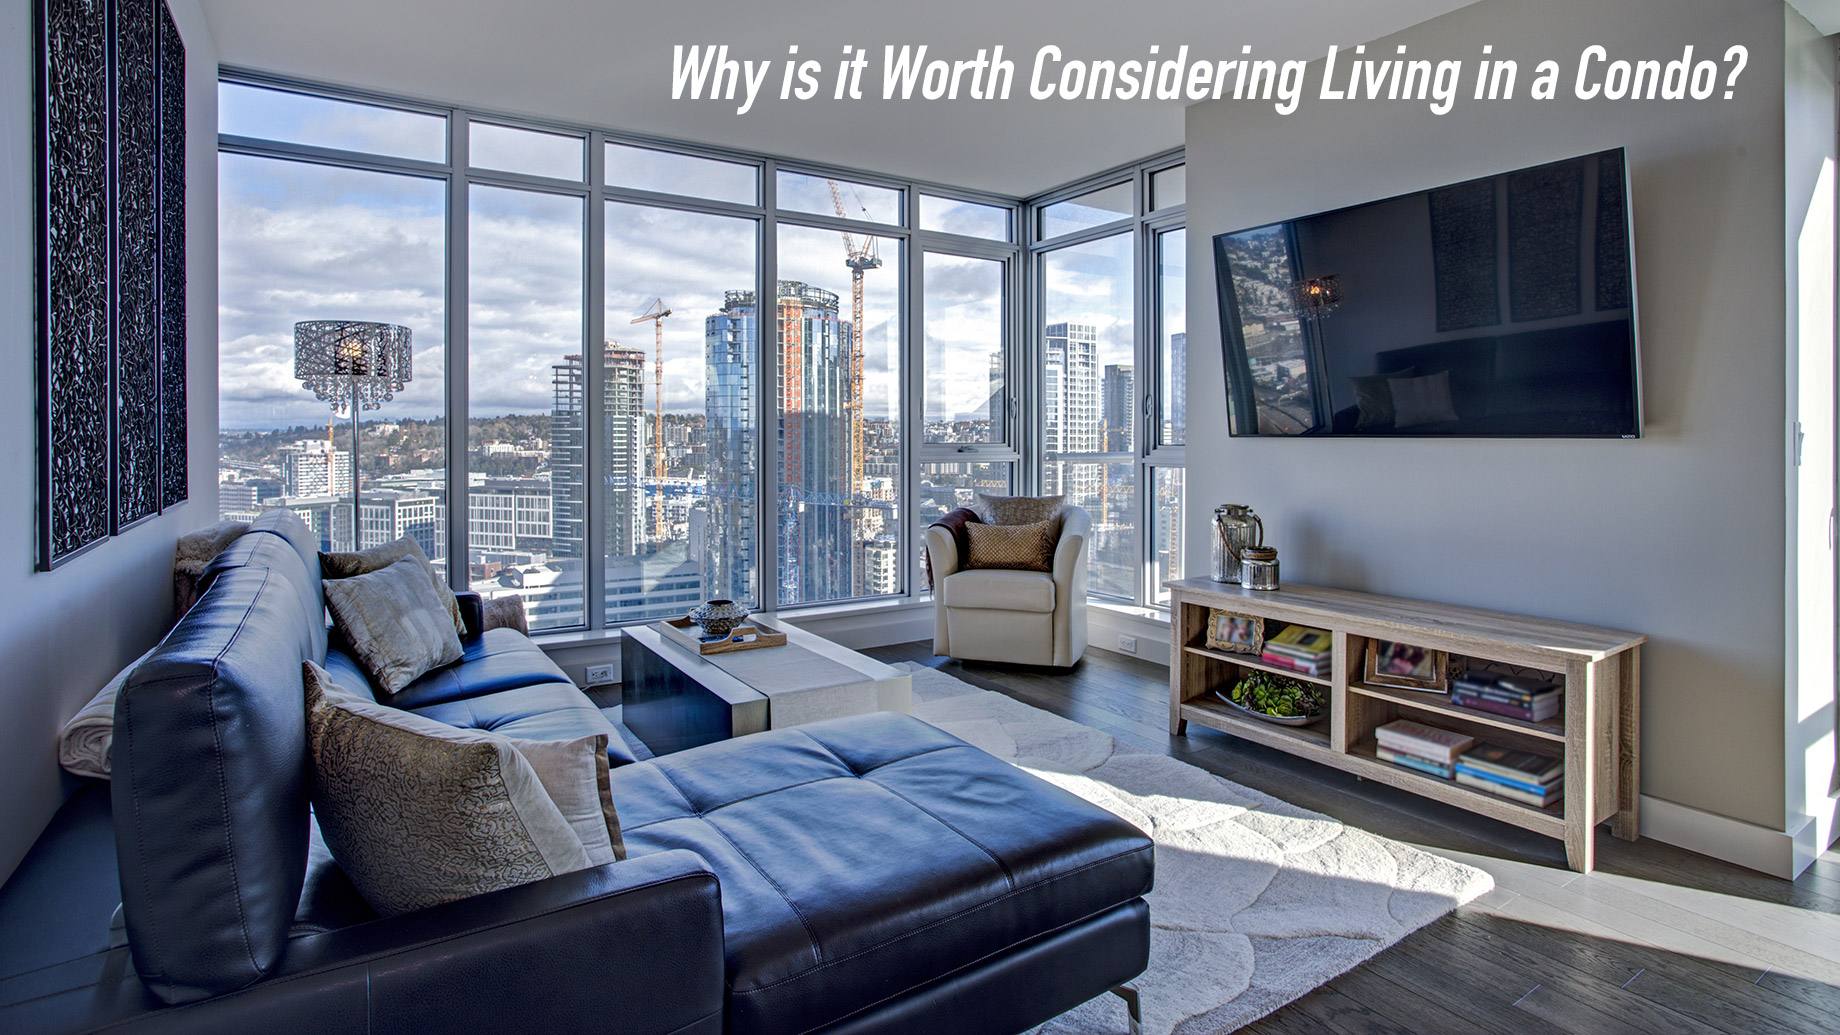 Why is it Worth Considering Living in a Condo?